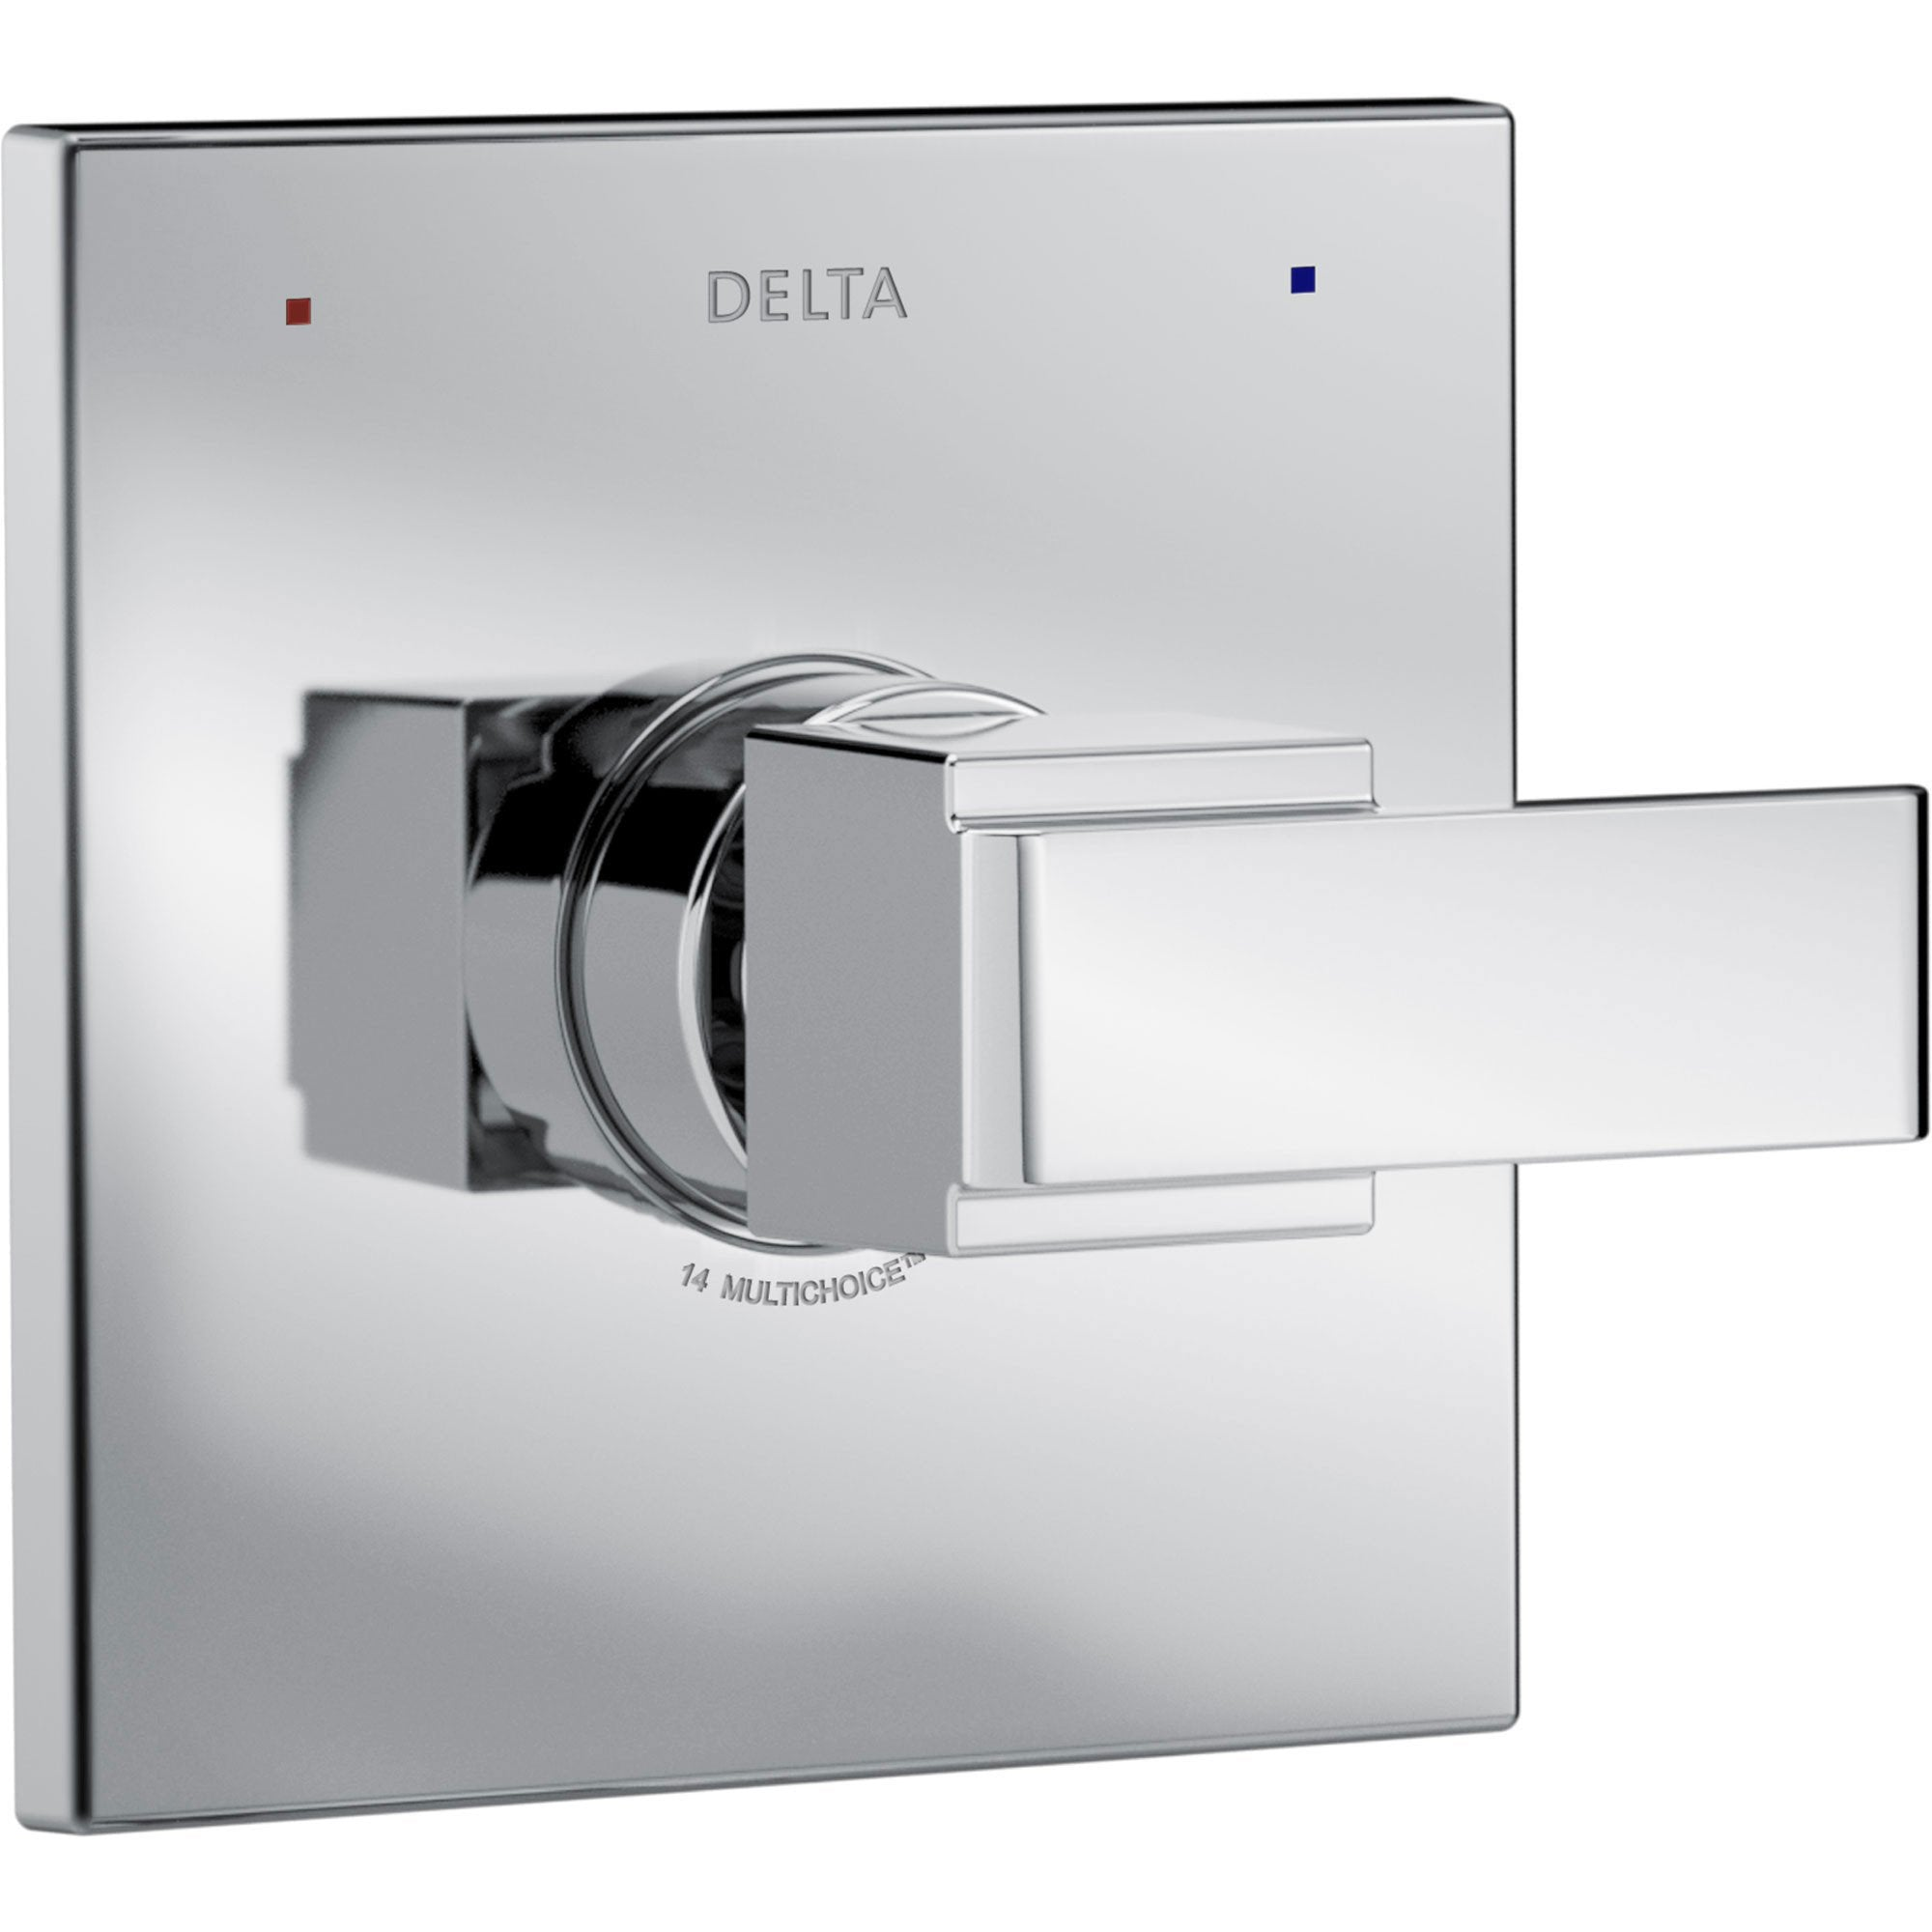 Delta Ara Modern Monitor 14 Series Chrome Finish Square Single Handle Pressure Balanced Shower Faucet Control INCLUDES Rough-in Valve D1254V